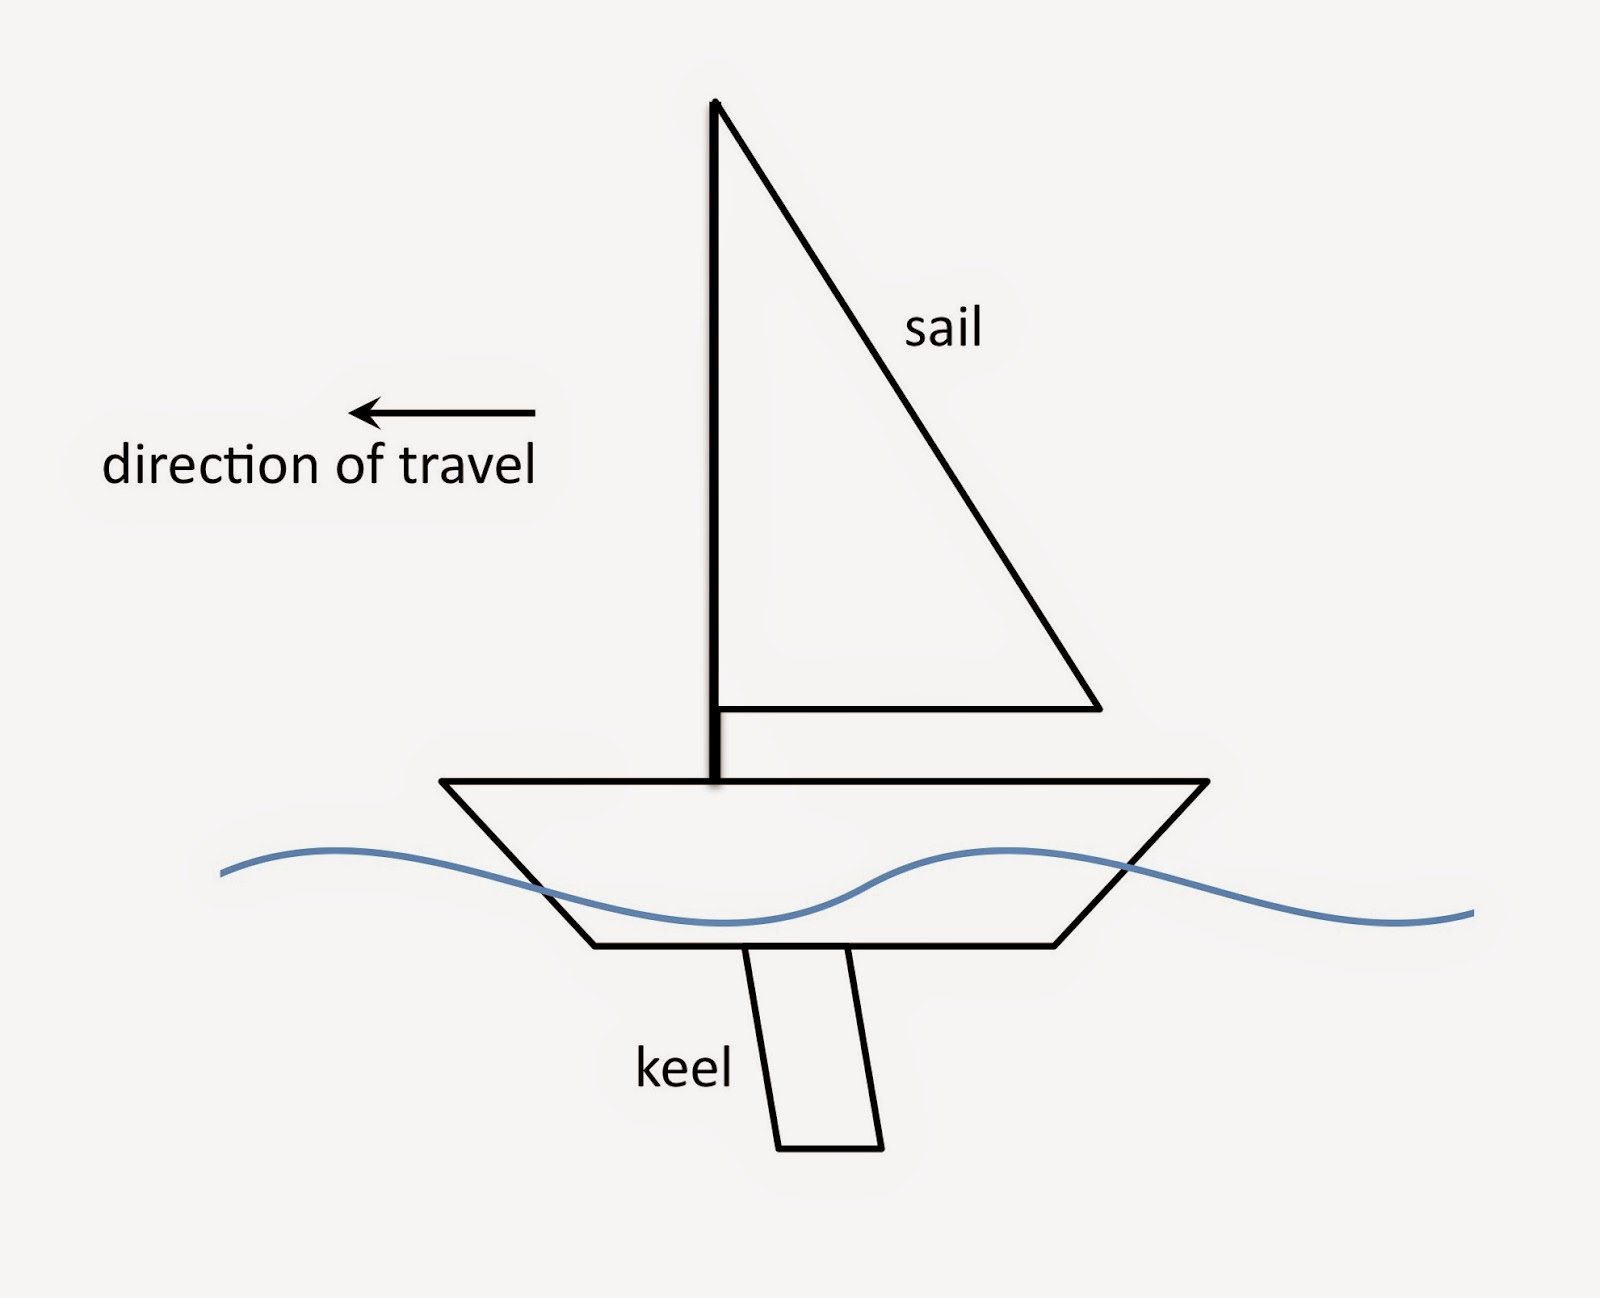 Parts Of Push Boat Diagram Opinions About Wiring Motor Physics Buzz The Sailing How Does A Sailboat Move Upwind Rh Physicsbuzz Physicscentral Com Sail